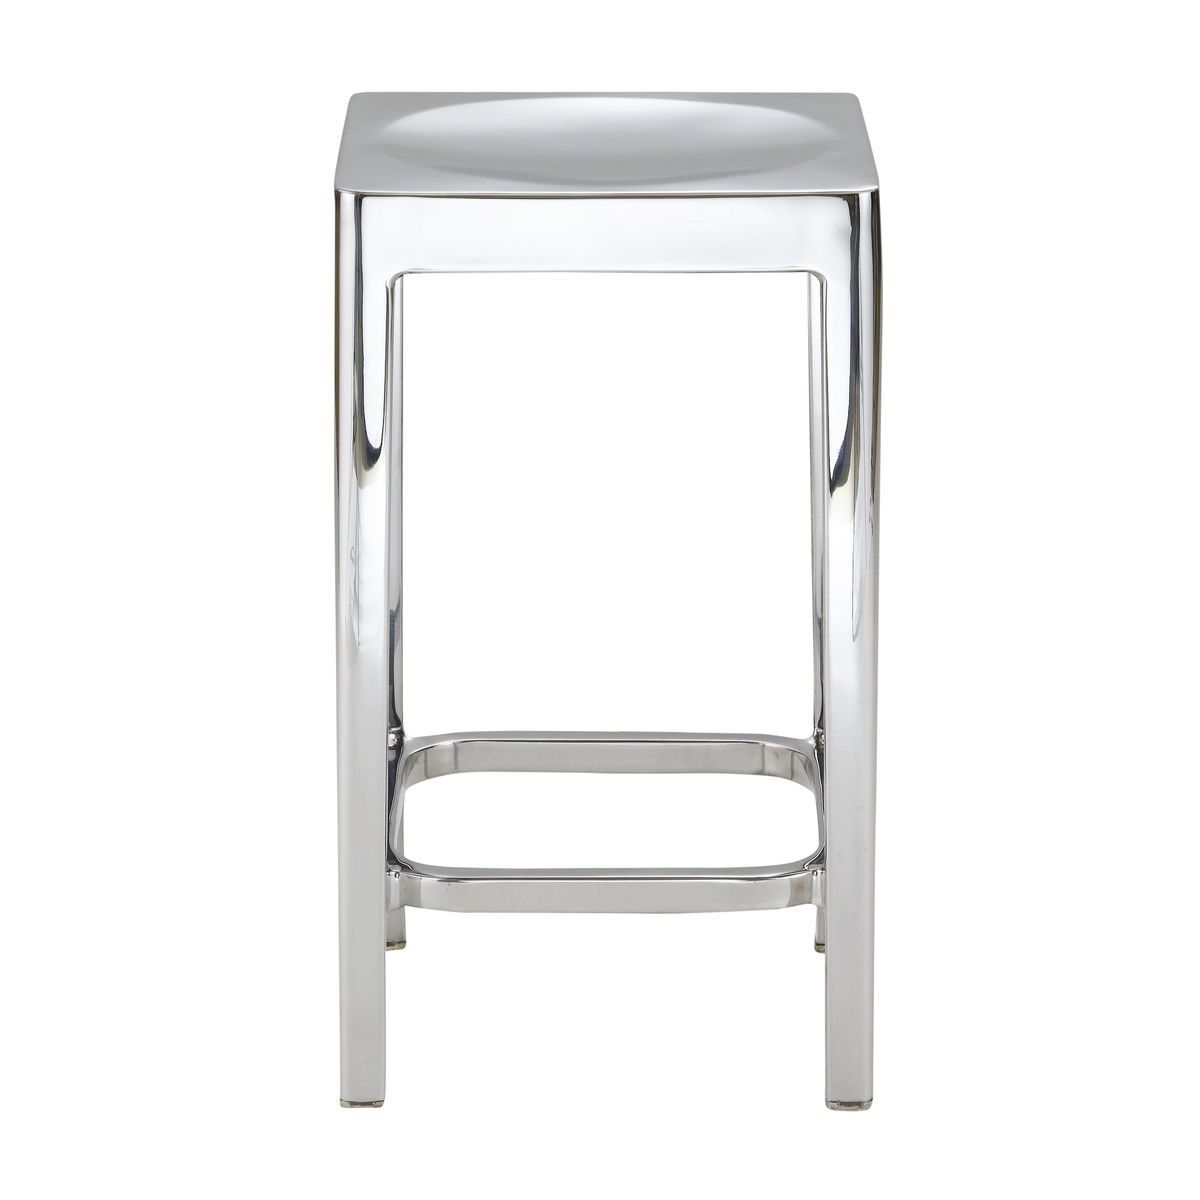 Emeco Counter Stool Tabouret De Bar Emeco